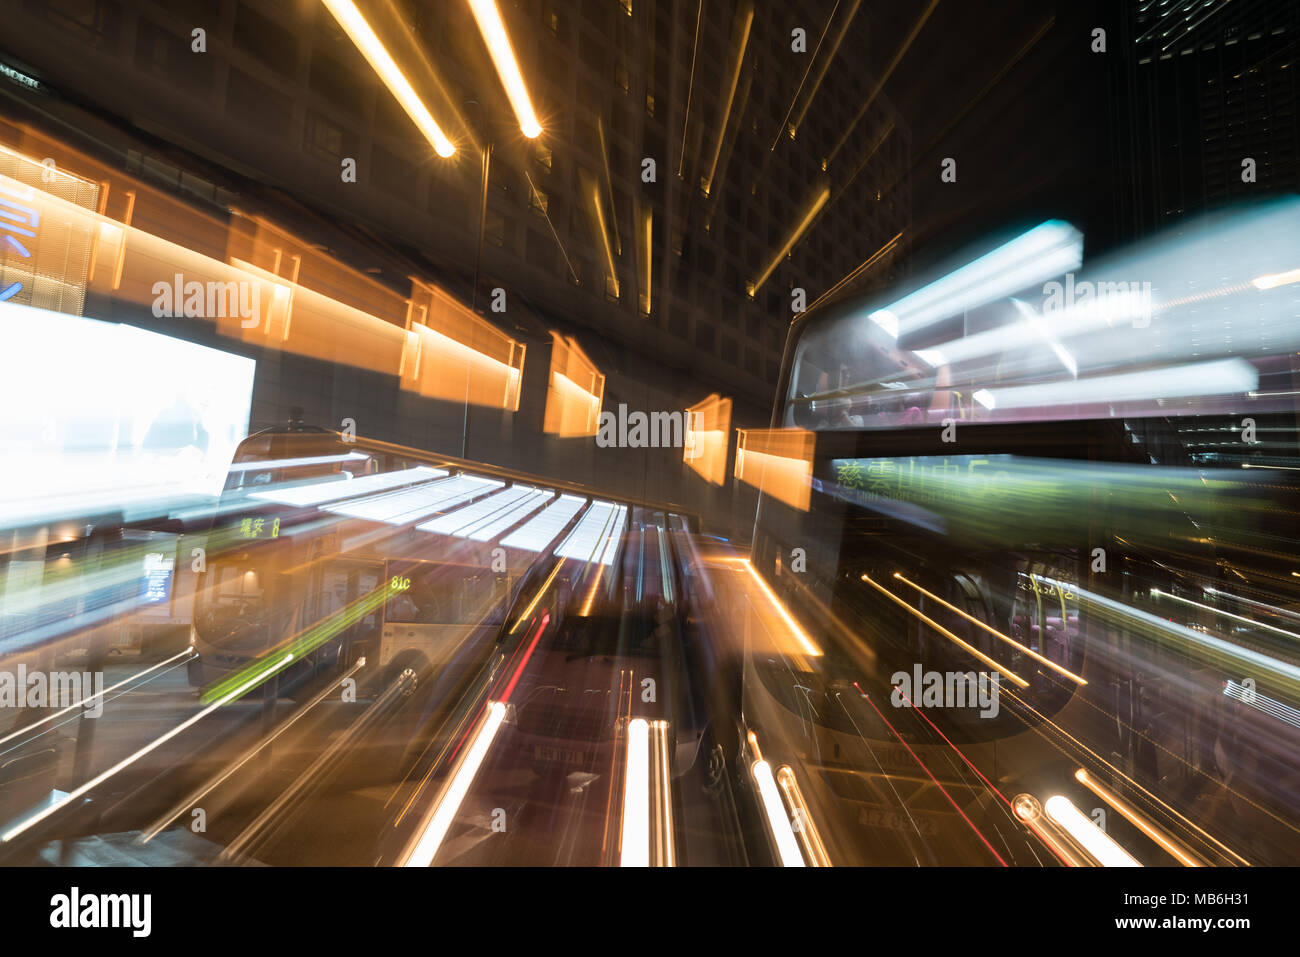 KOWLOON HONG KONG, SEPTEMBER 20, 2017;Night long exposure of passing vehicles on busy city street. - Stock Image